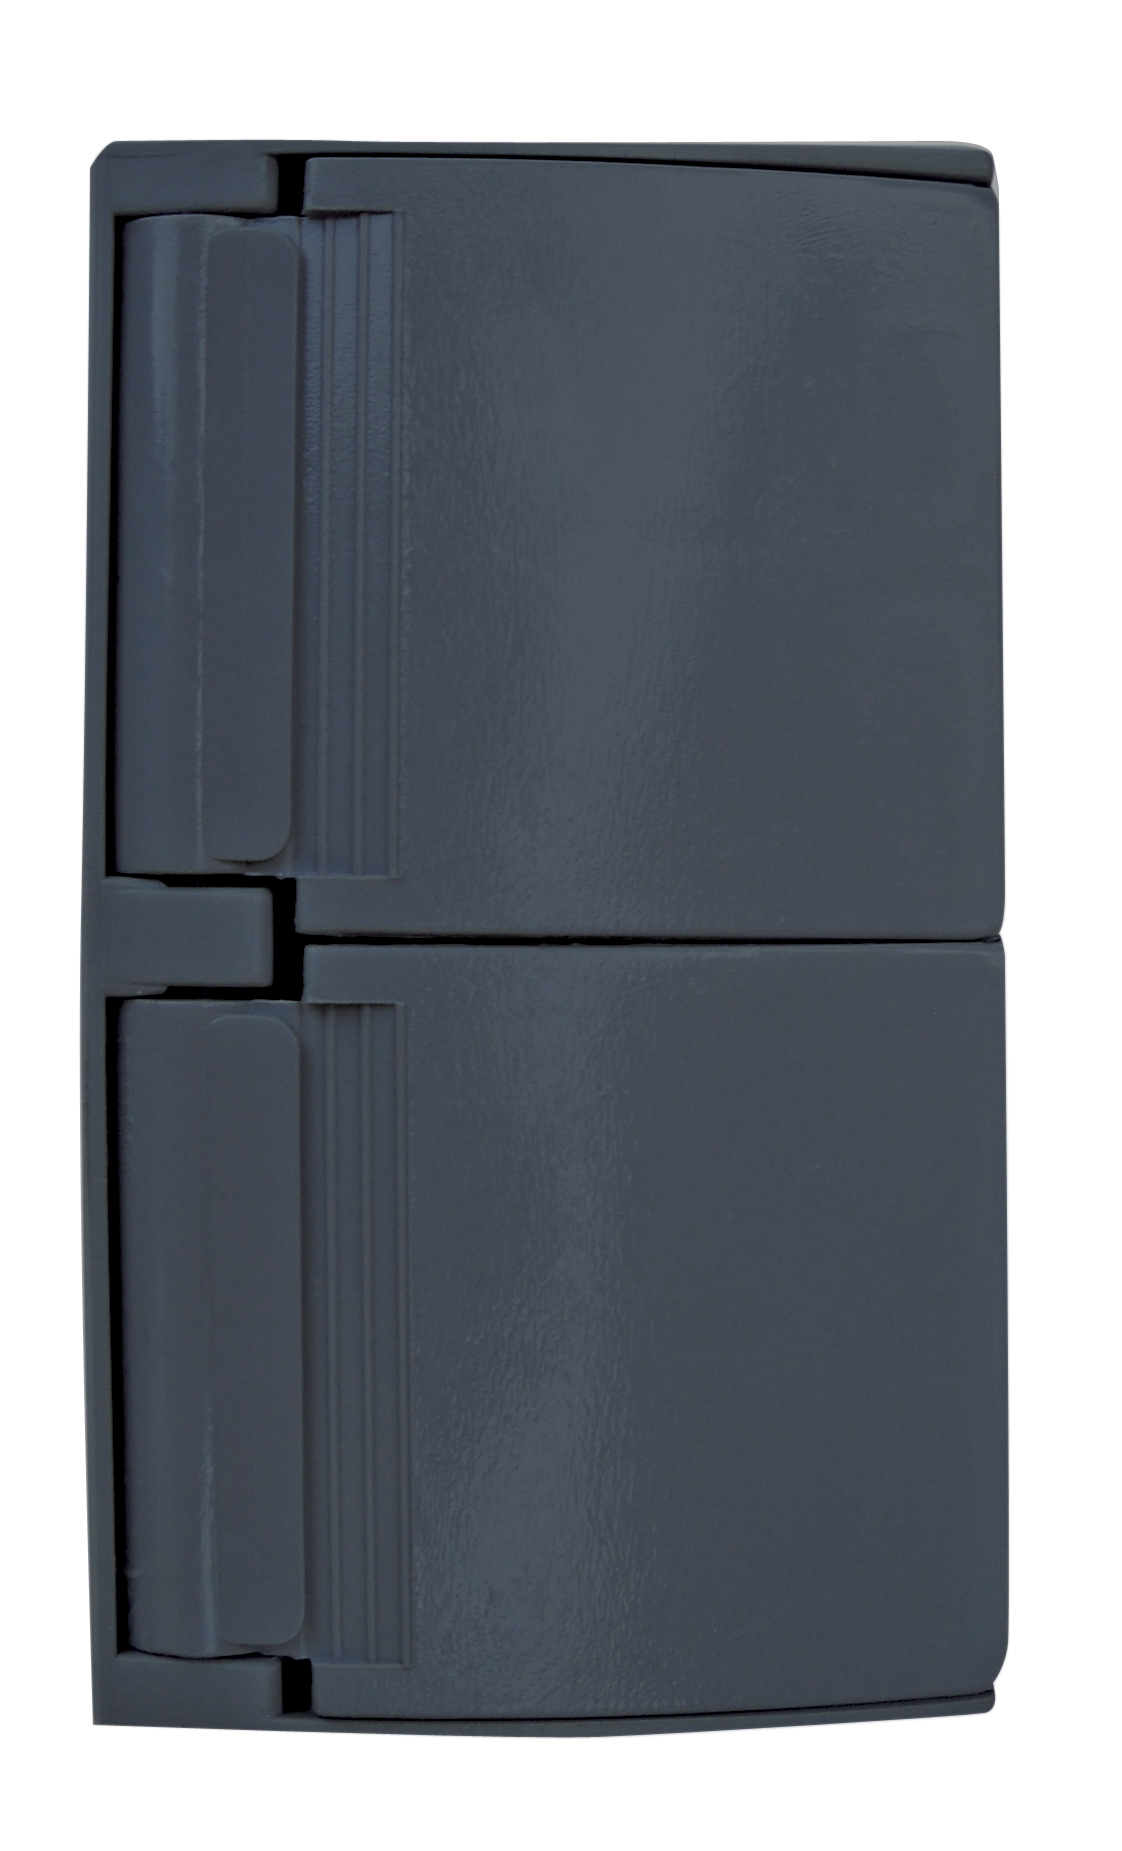 Weatherproof Standard Cover - Black 52522